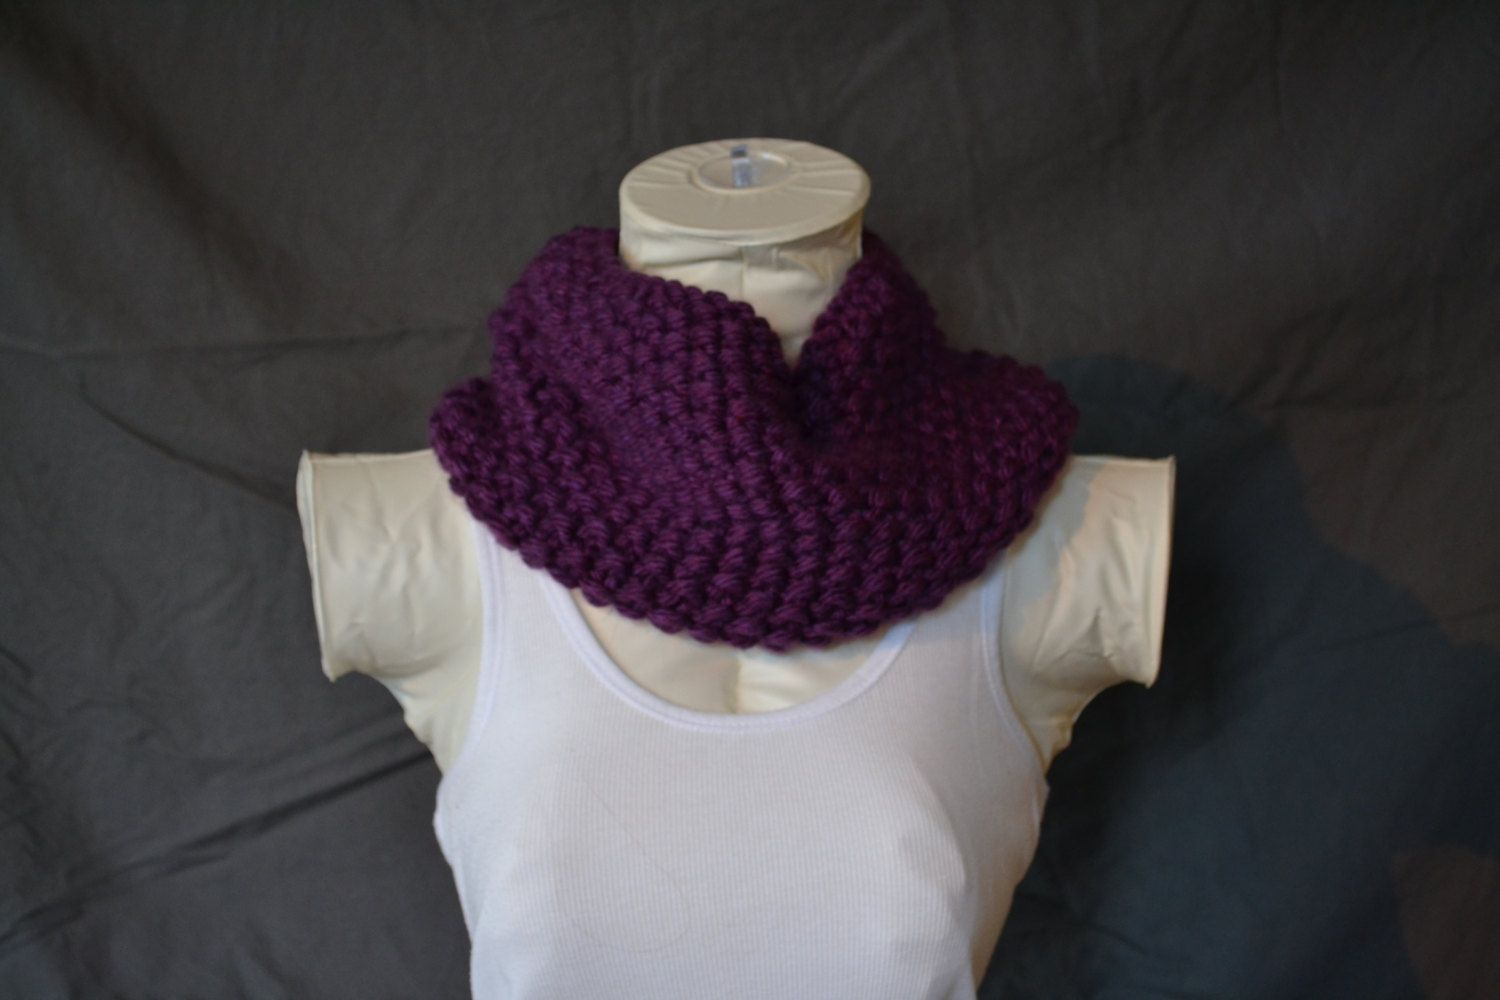 Plum Knitted Cowl Infinity Scarf by KnotsandBows Boutique on Etsy, $25.00